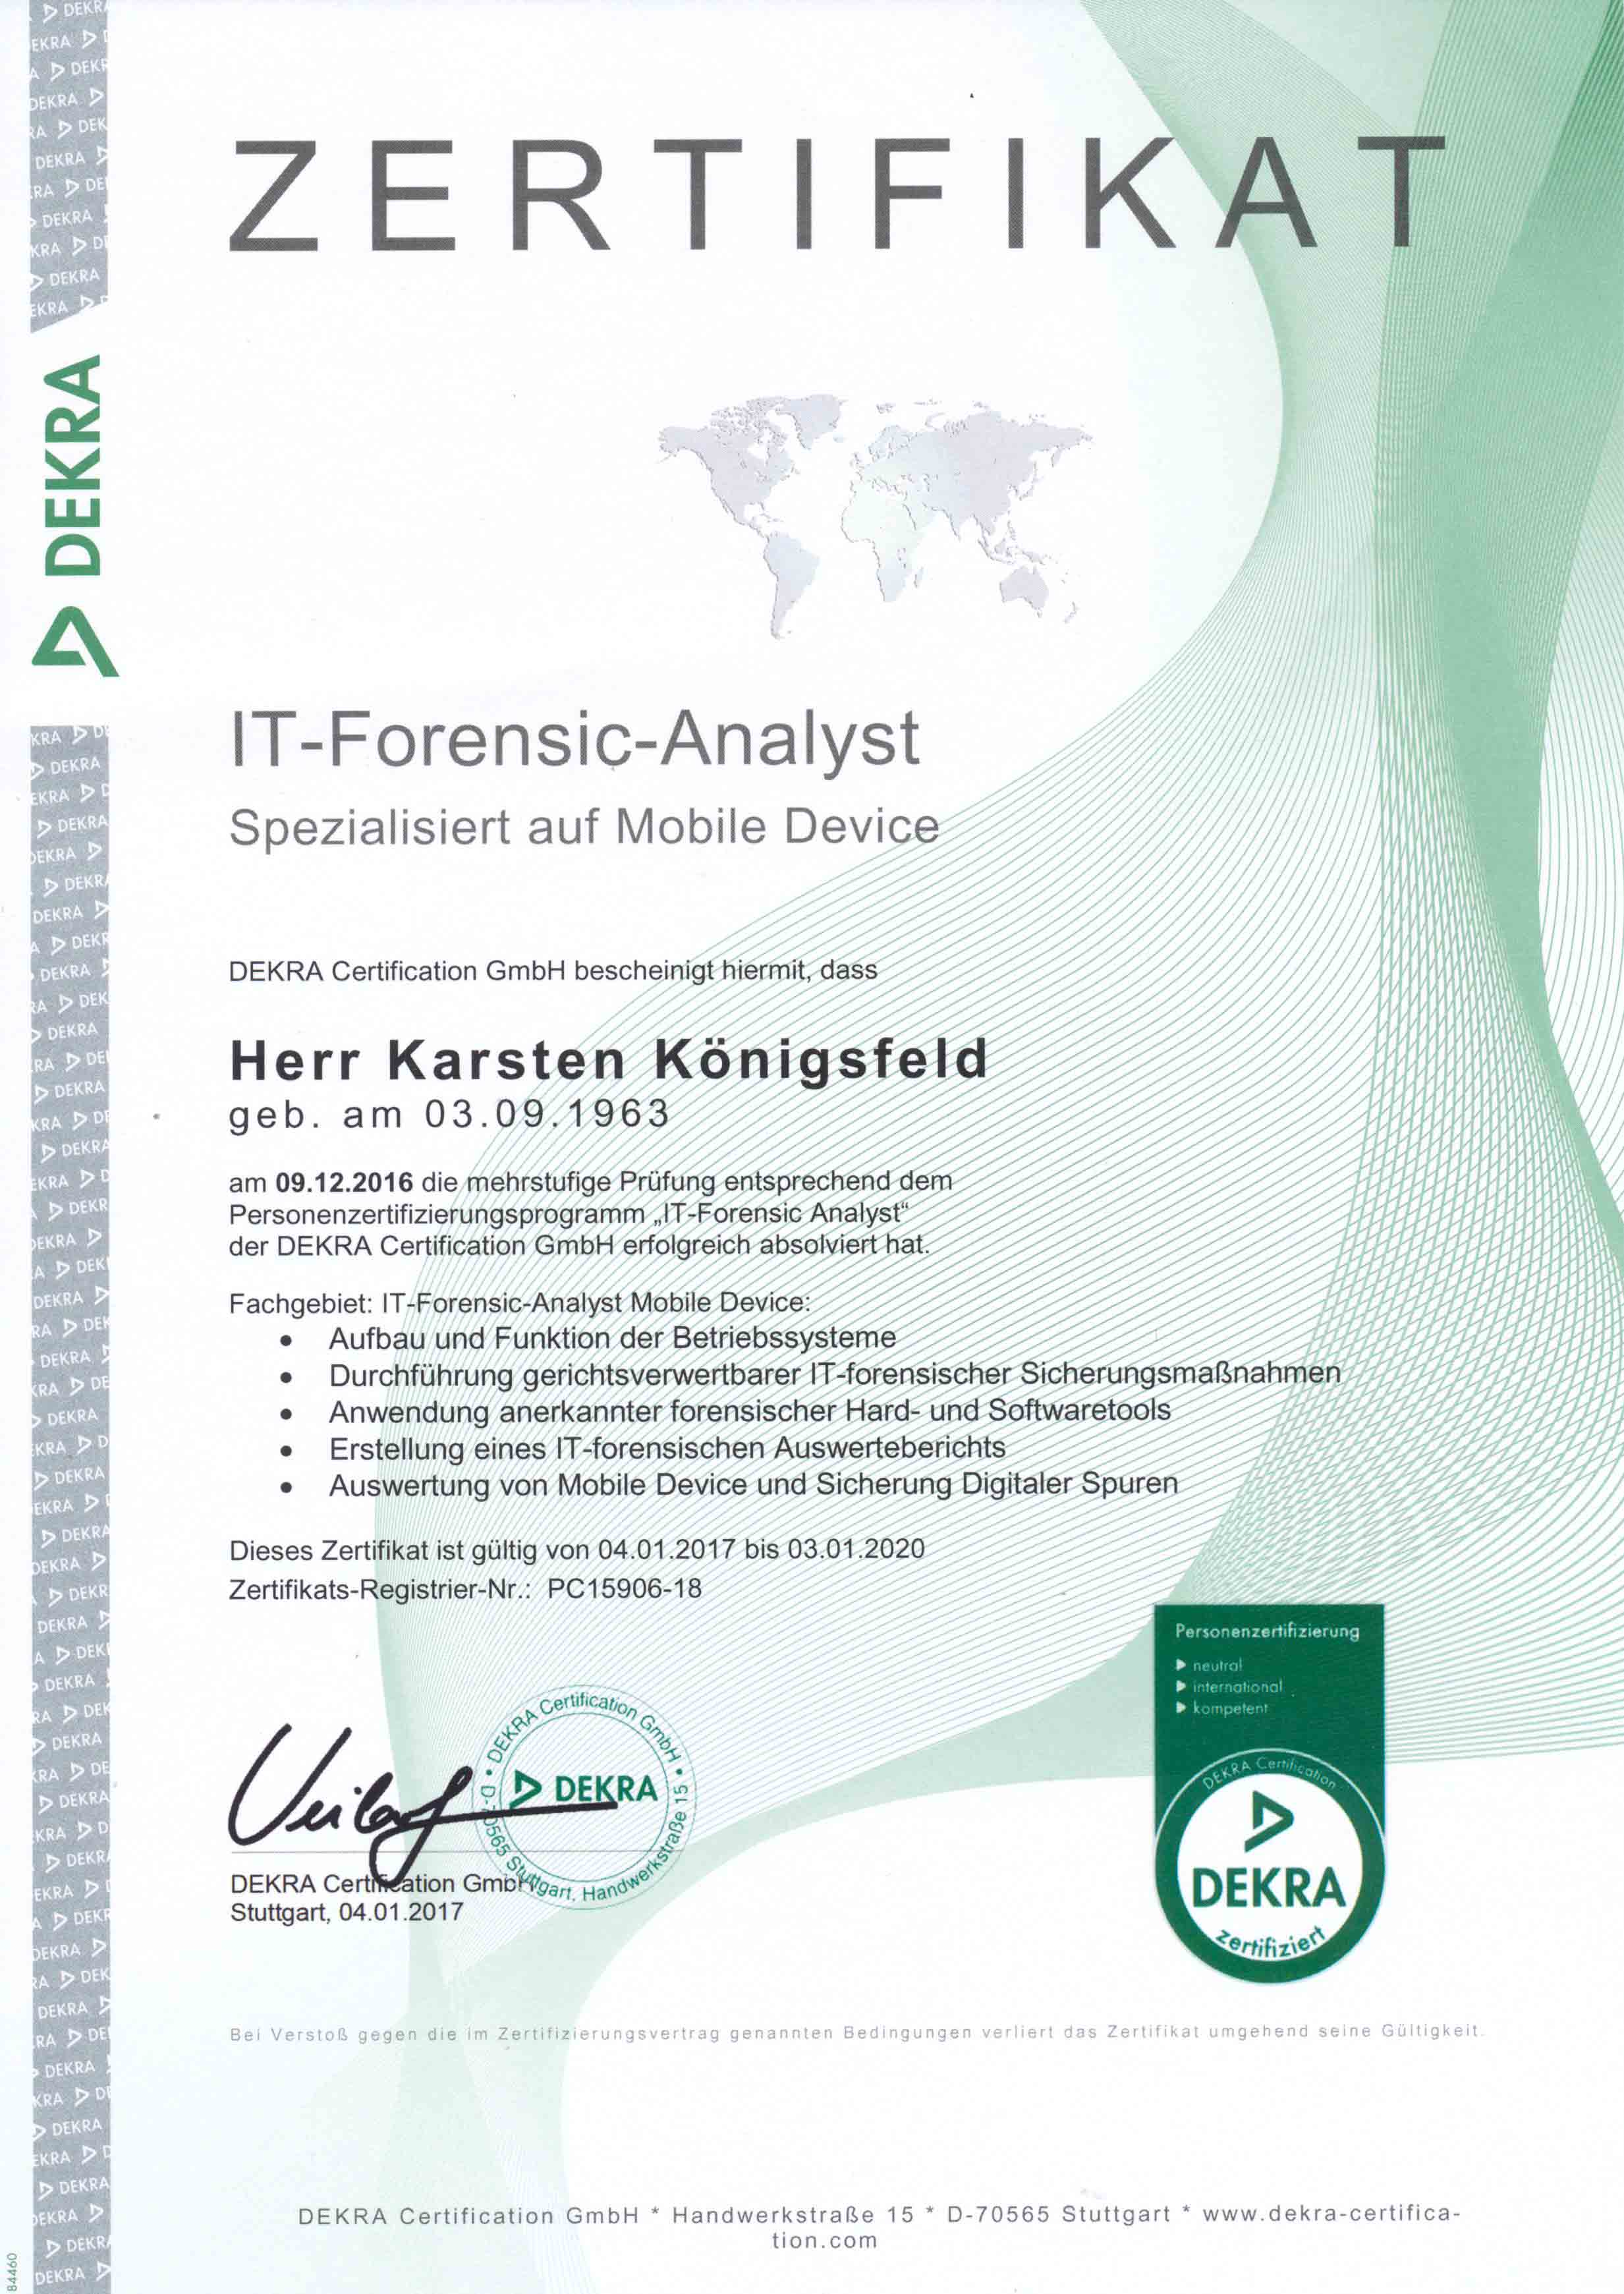 IT Forensic Analyst Karsten Koenigsfeld Zertifikat Mobil Devices